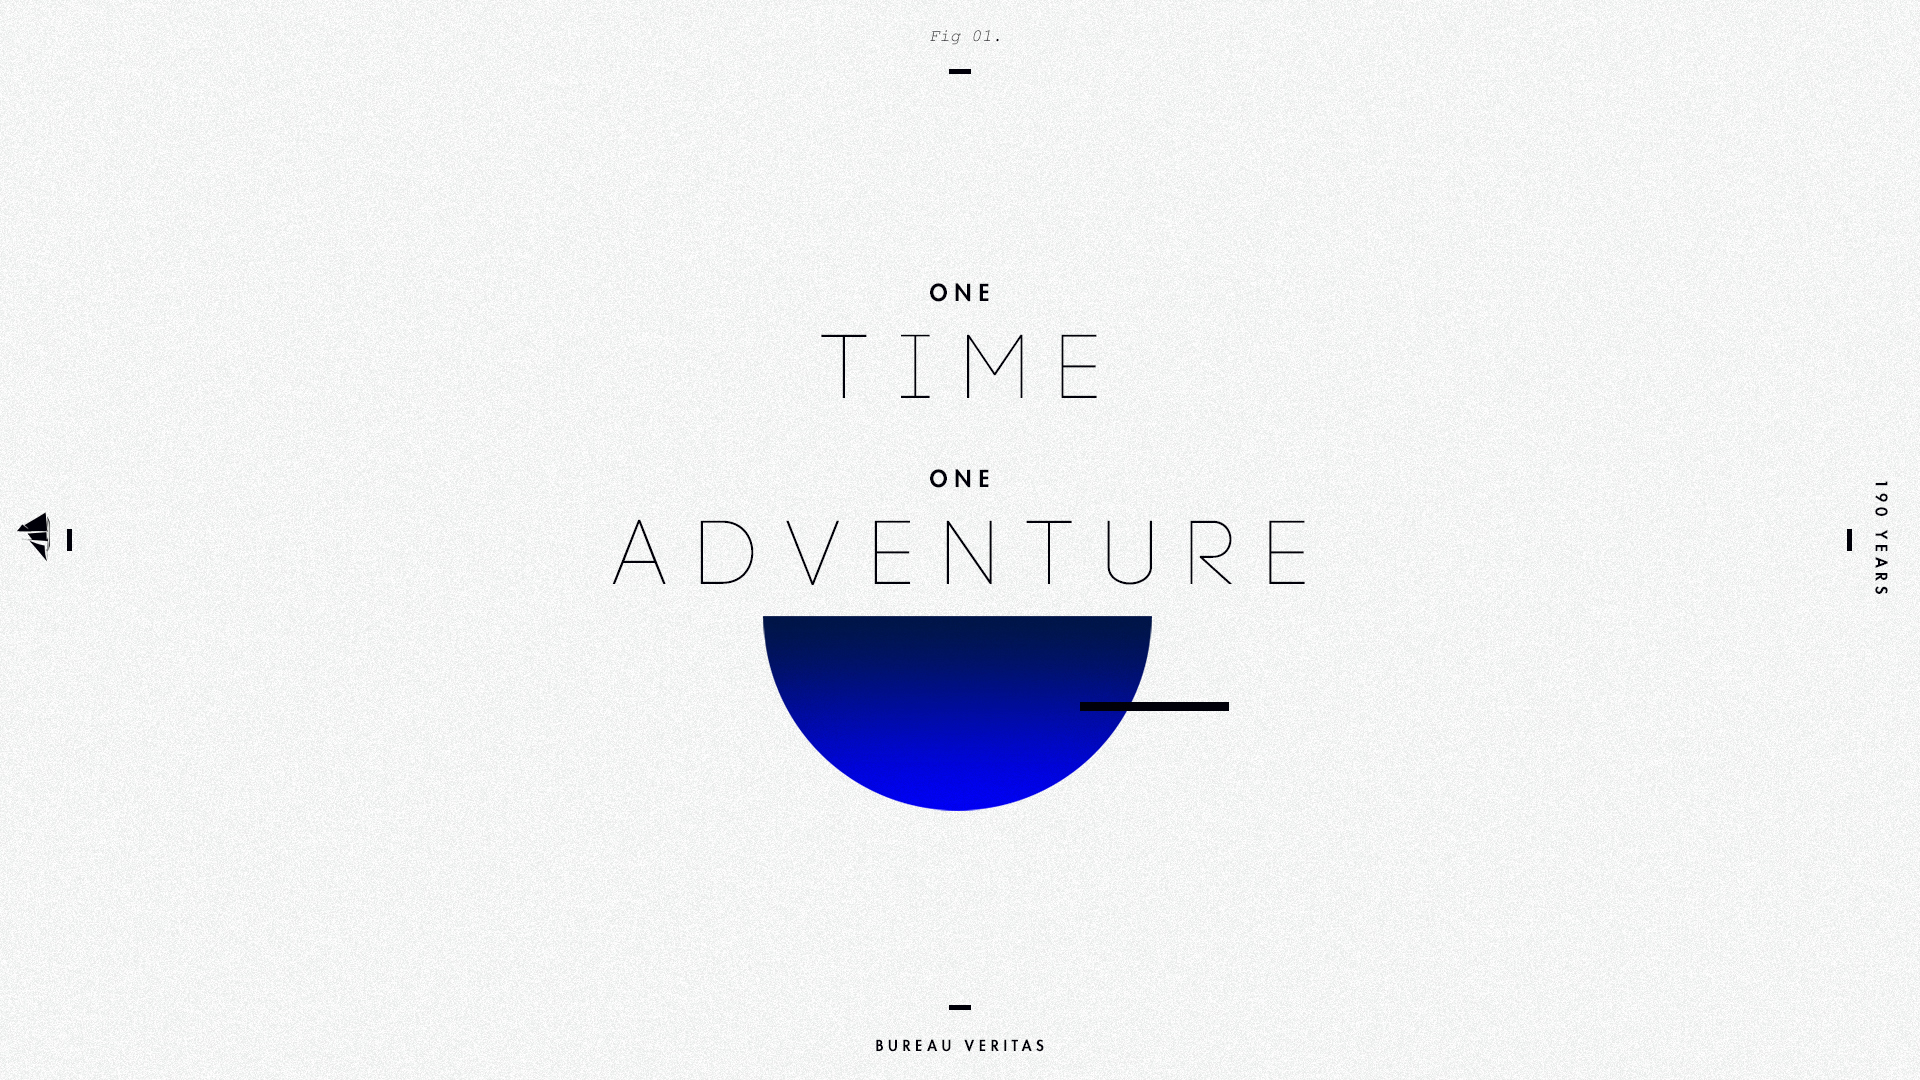 Bureau Veritas - One Time, One Adventure